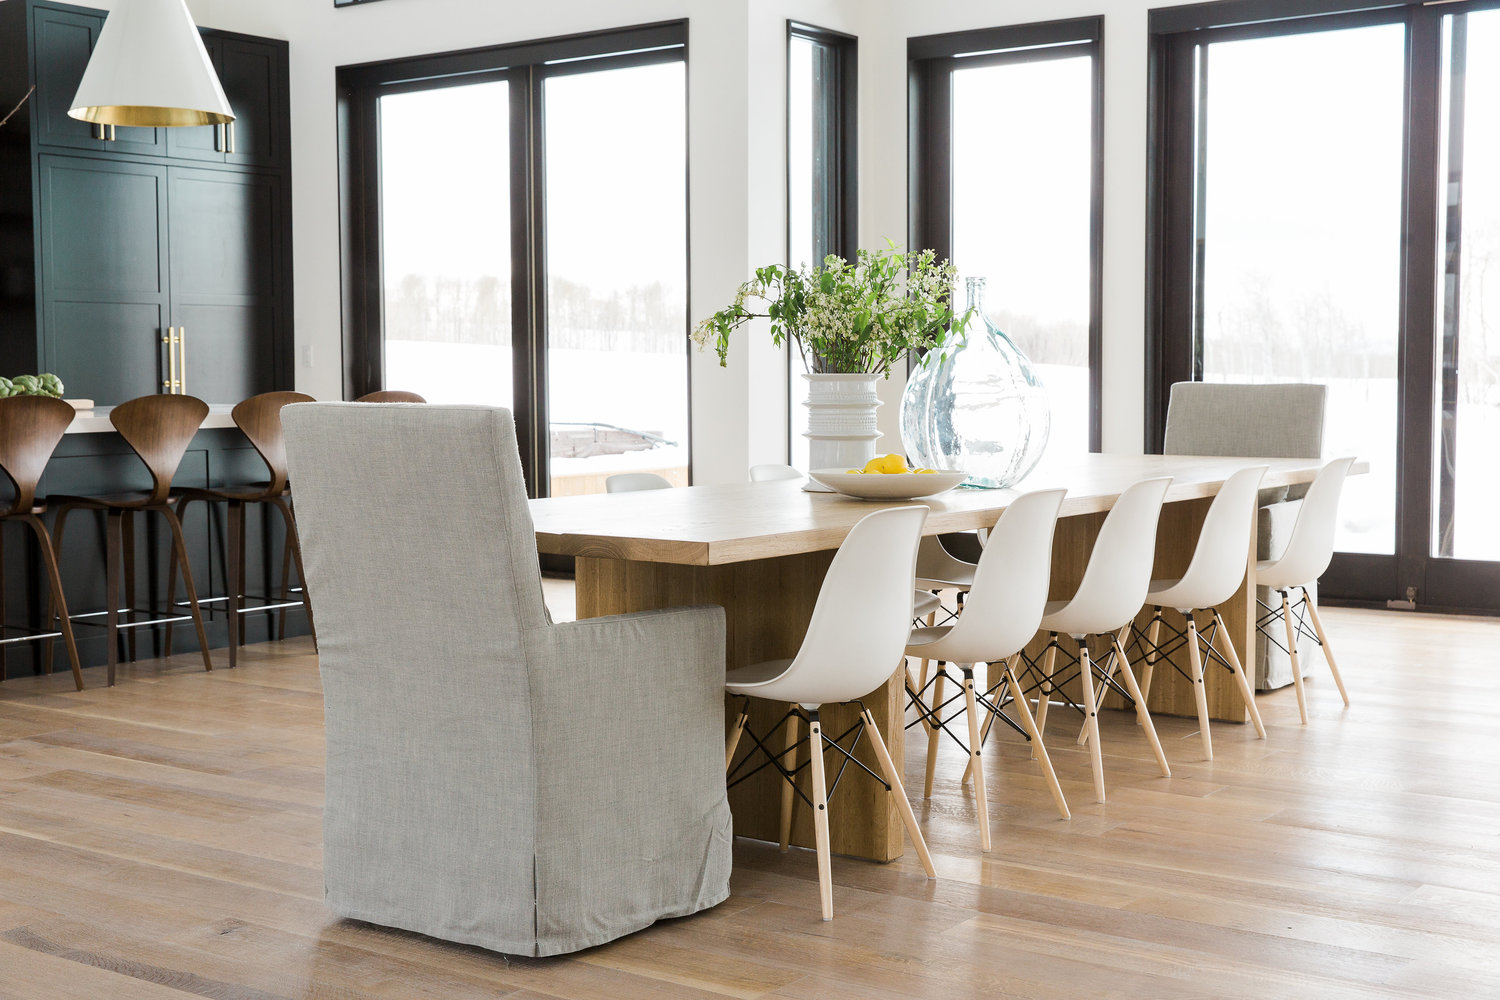 Long modern dining table with chairs